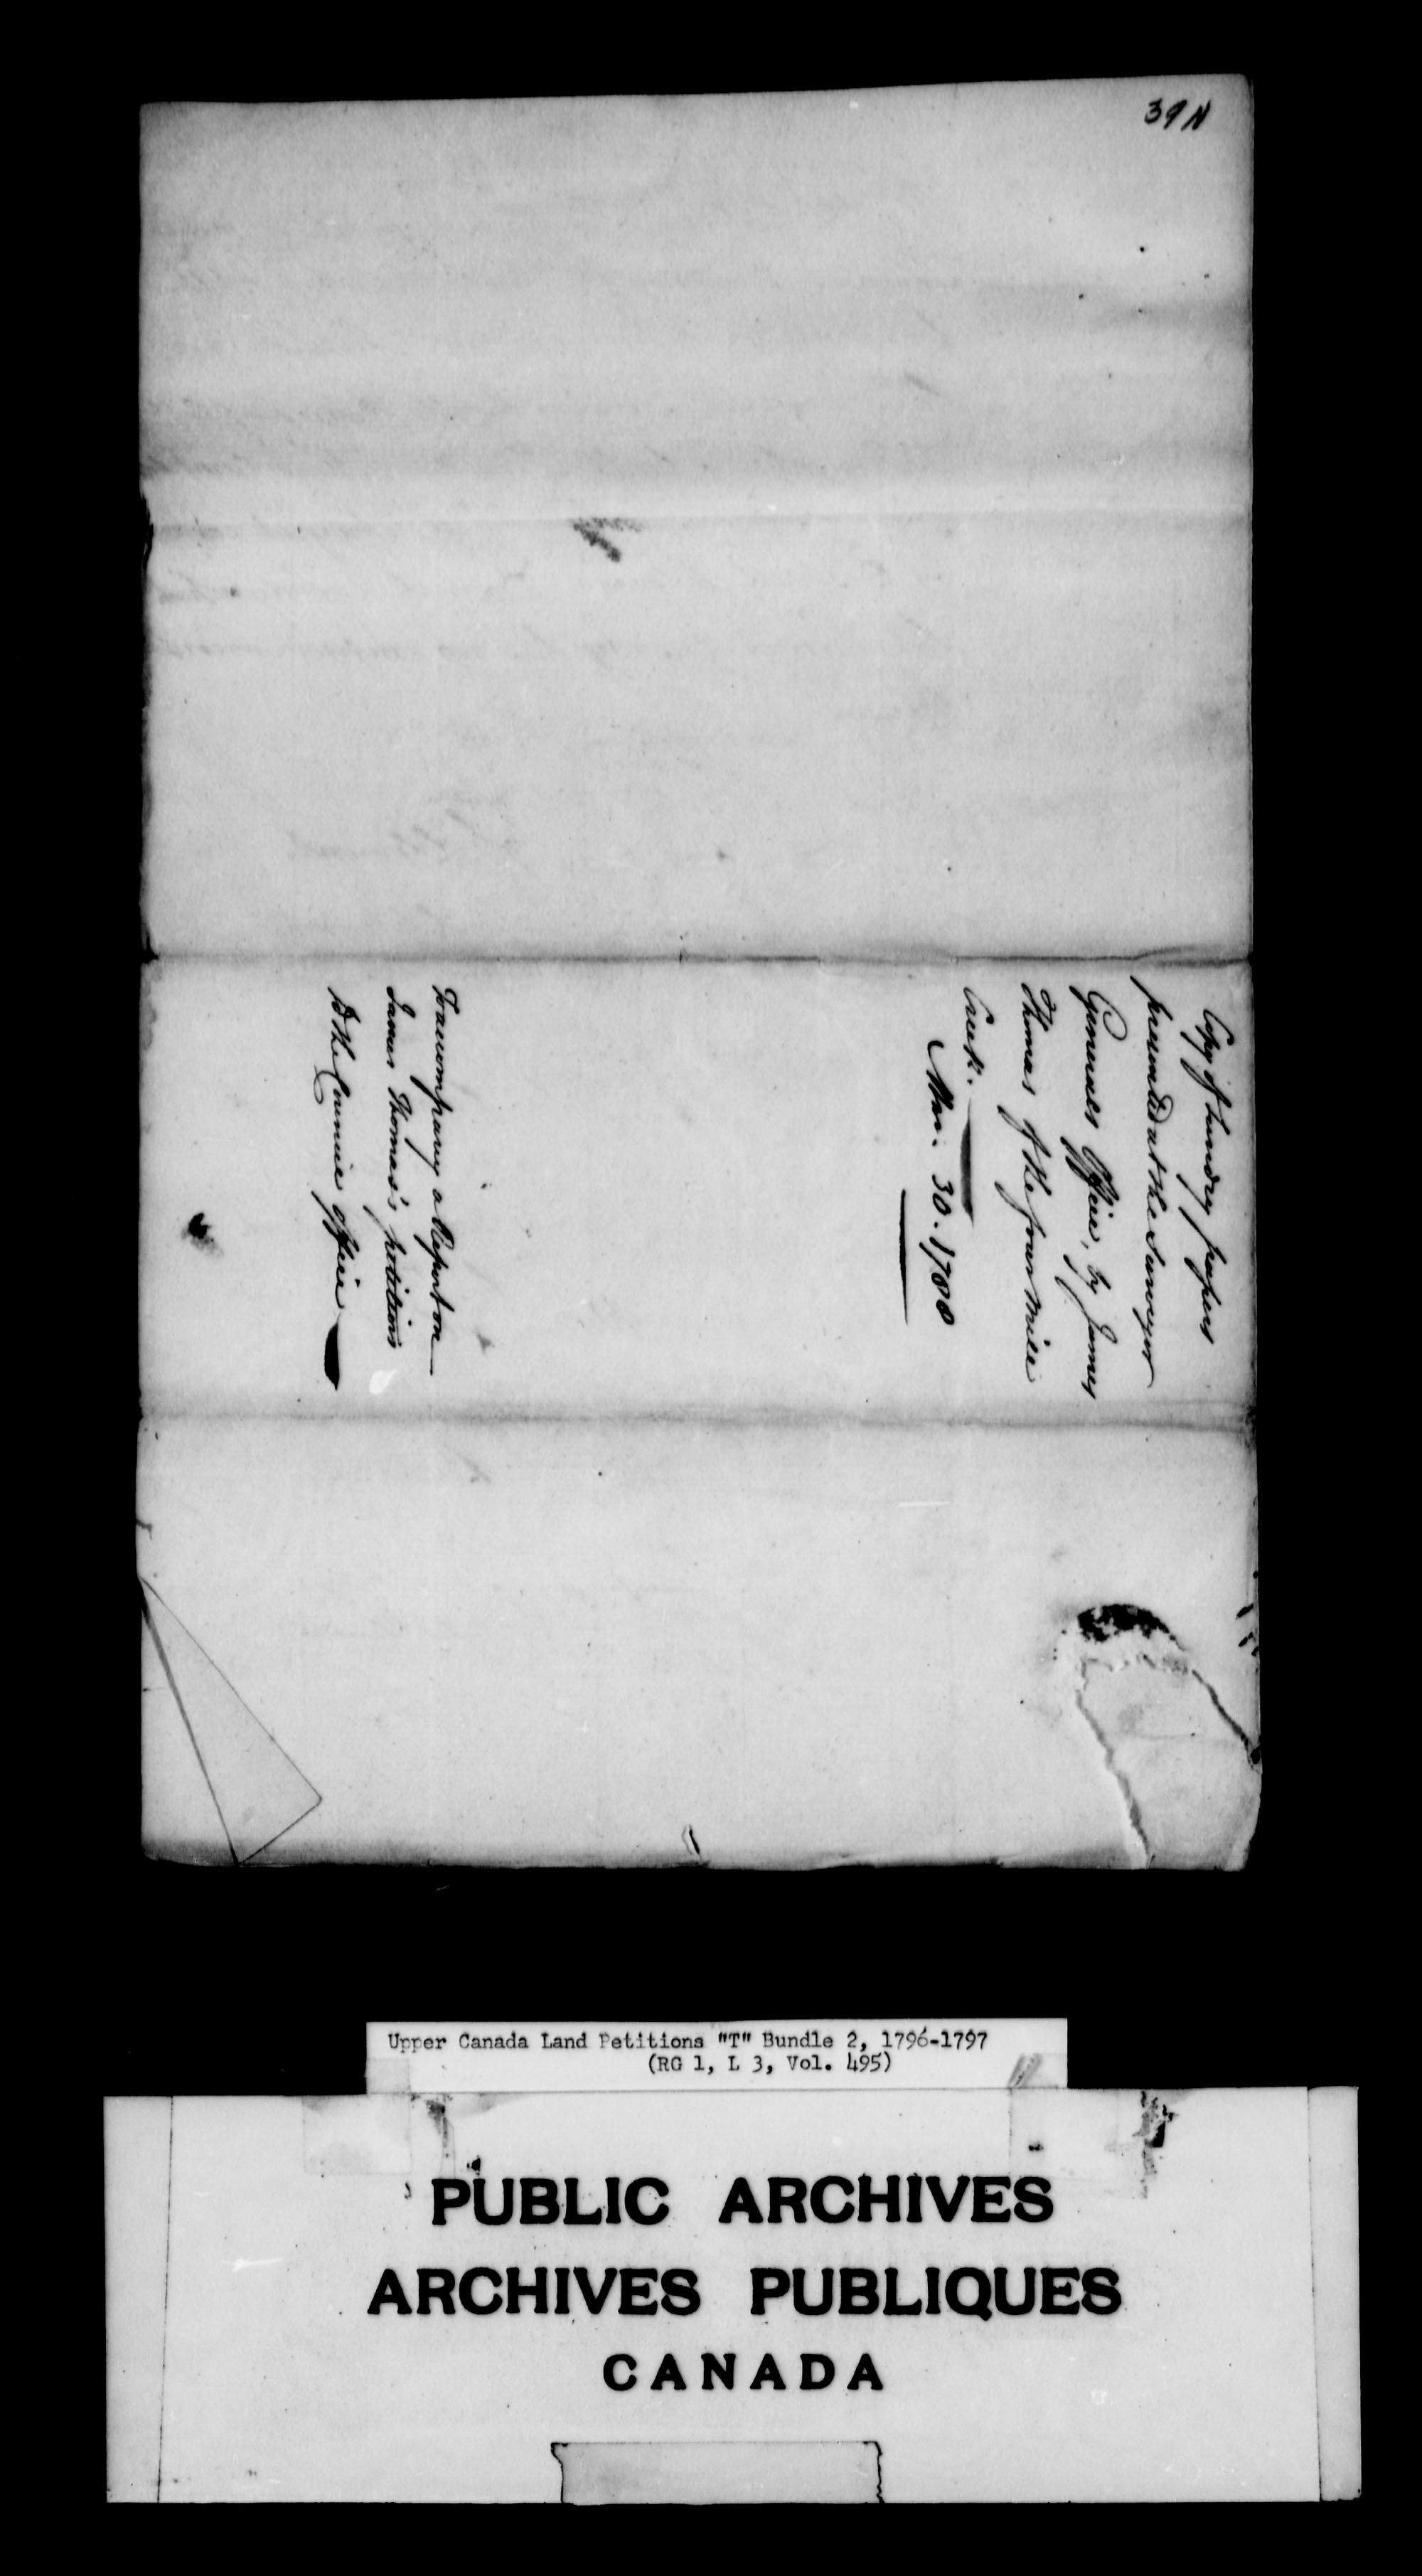 Title: Upper Canada Land Petitions (1763-1865) - Mikan Number: 205131 - Microform: c-2832